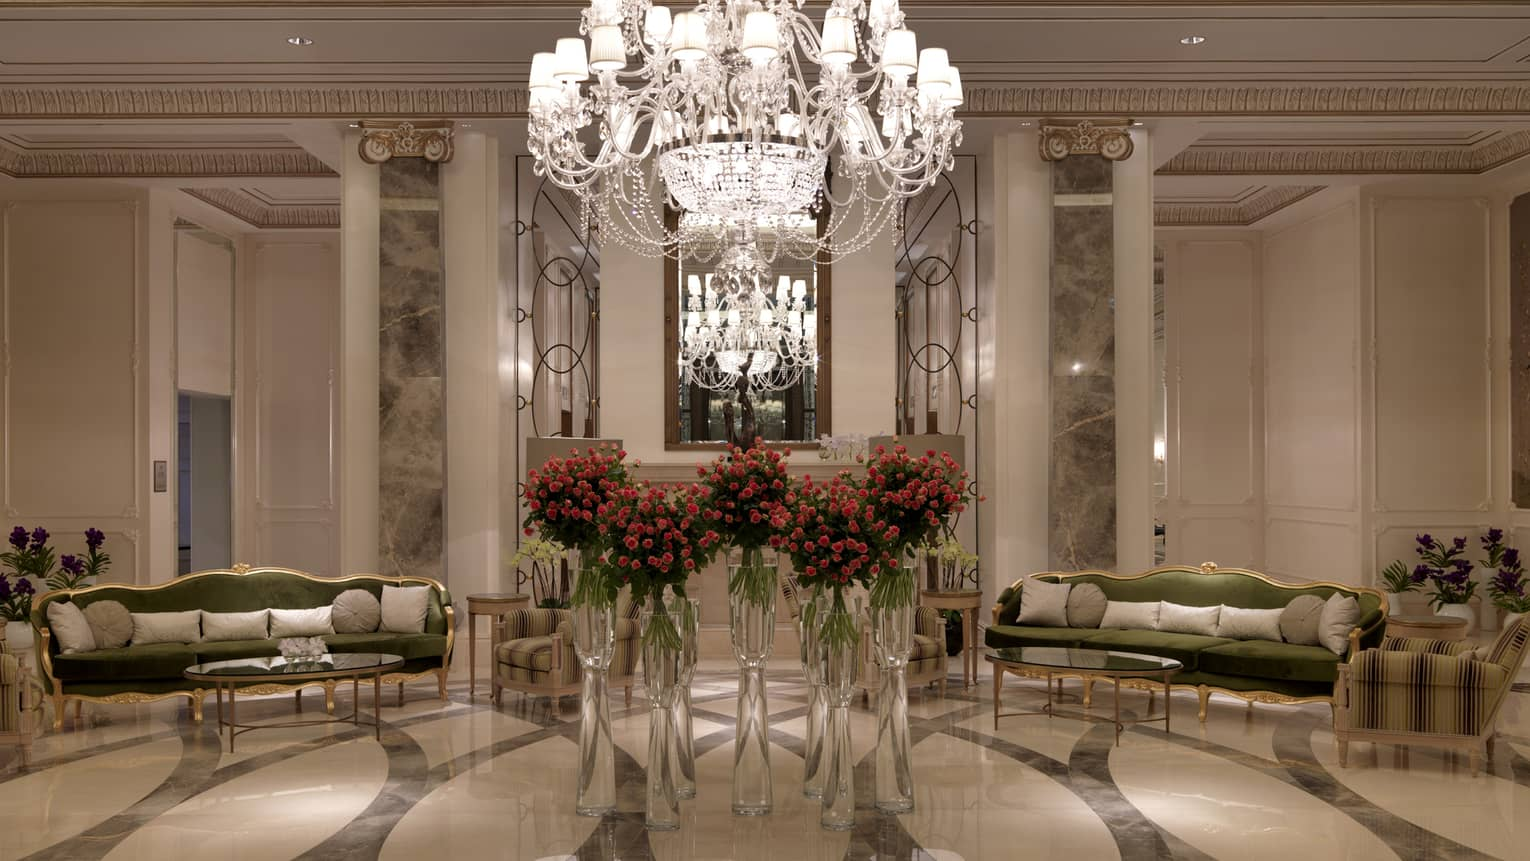 Foyer with large crystal chandelier over flowers in vases, velvet sofas